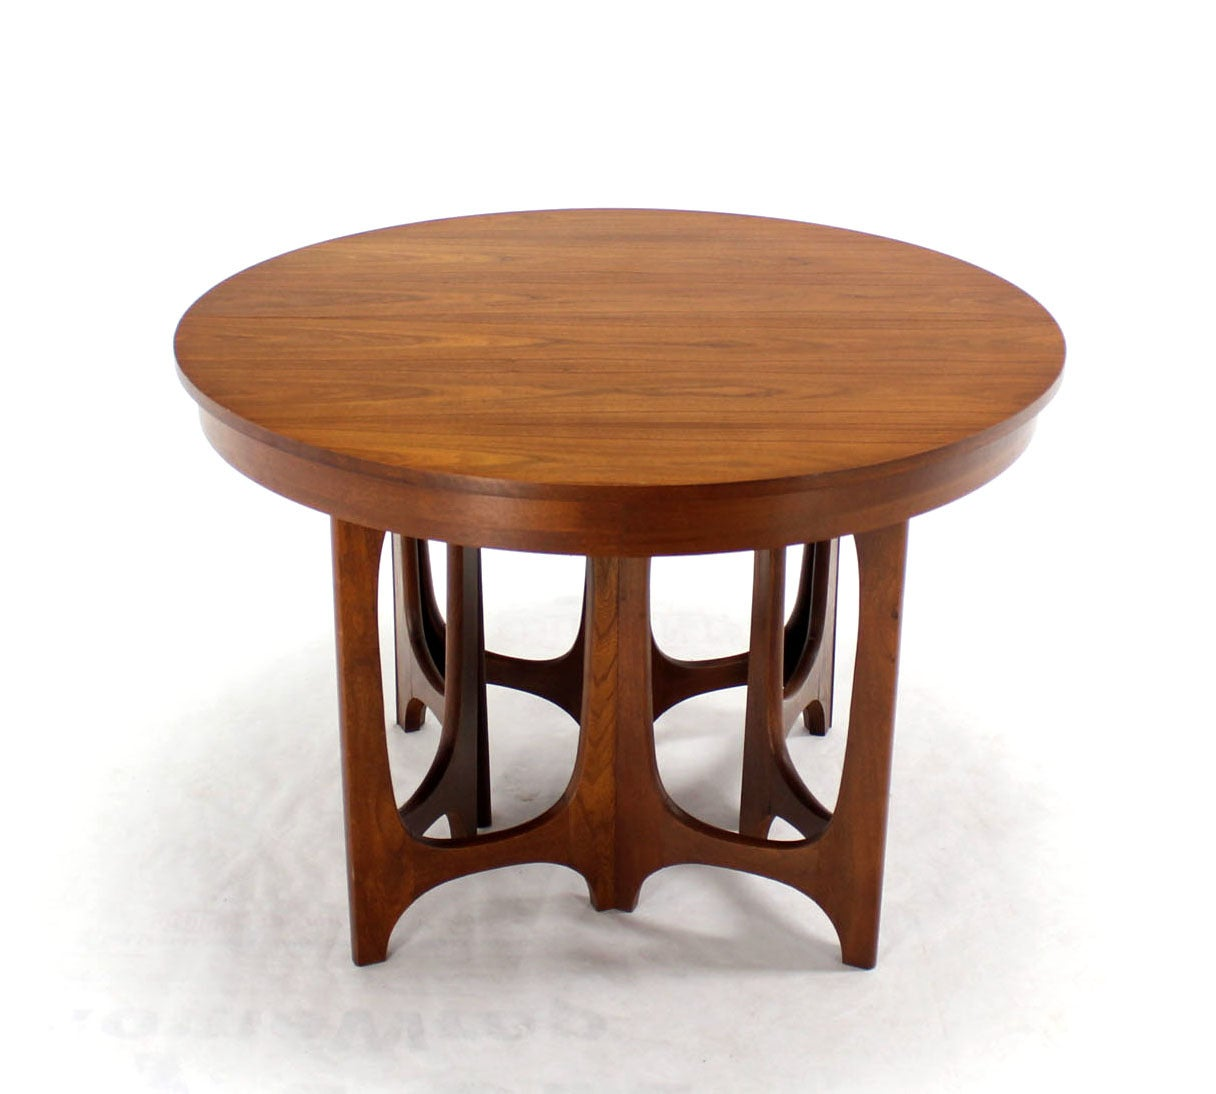 mid century modern walnut round dining table at 1stdibs. Black Bedroom Furniture Sets. Home Design Ideas